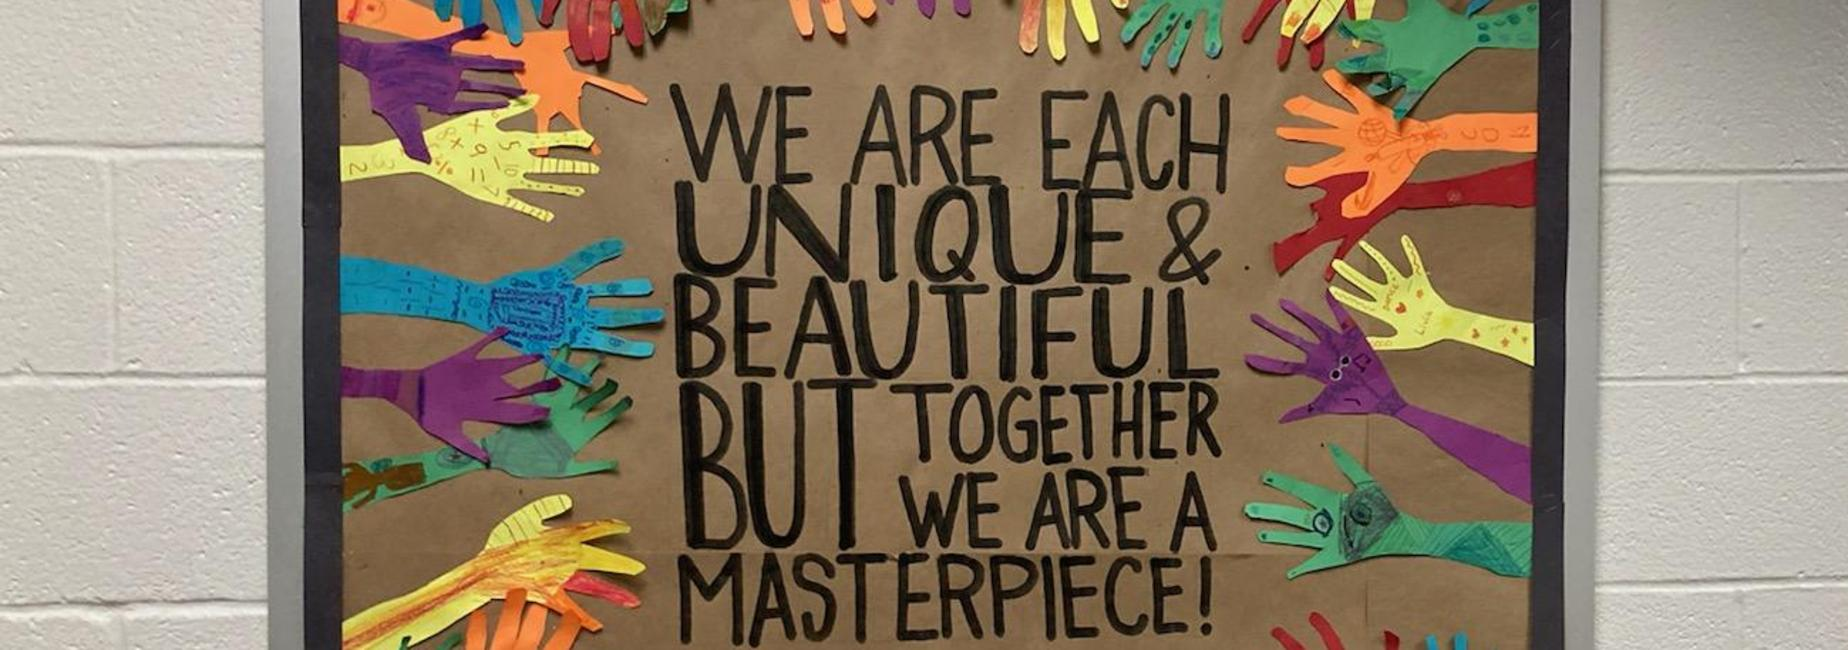 We are each Unique and Beautiful but together we are a masterpiece